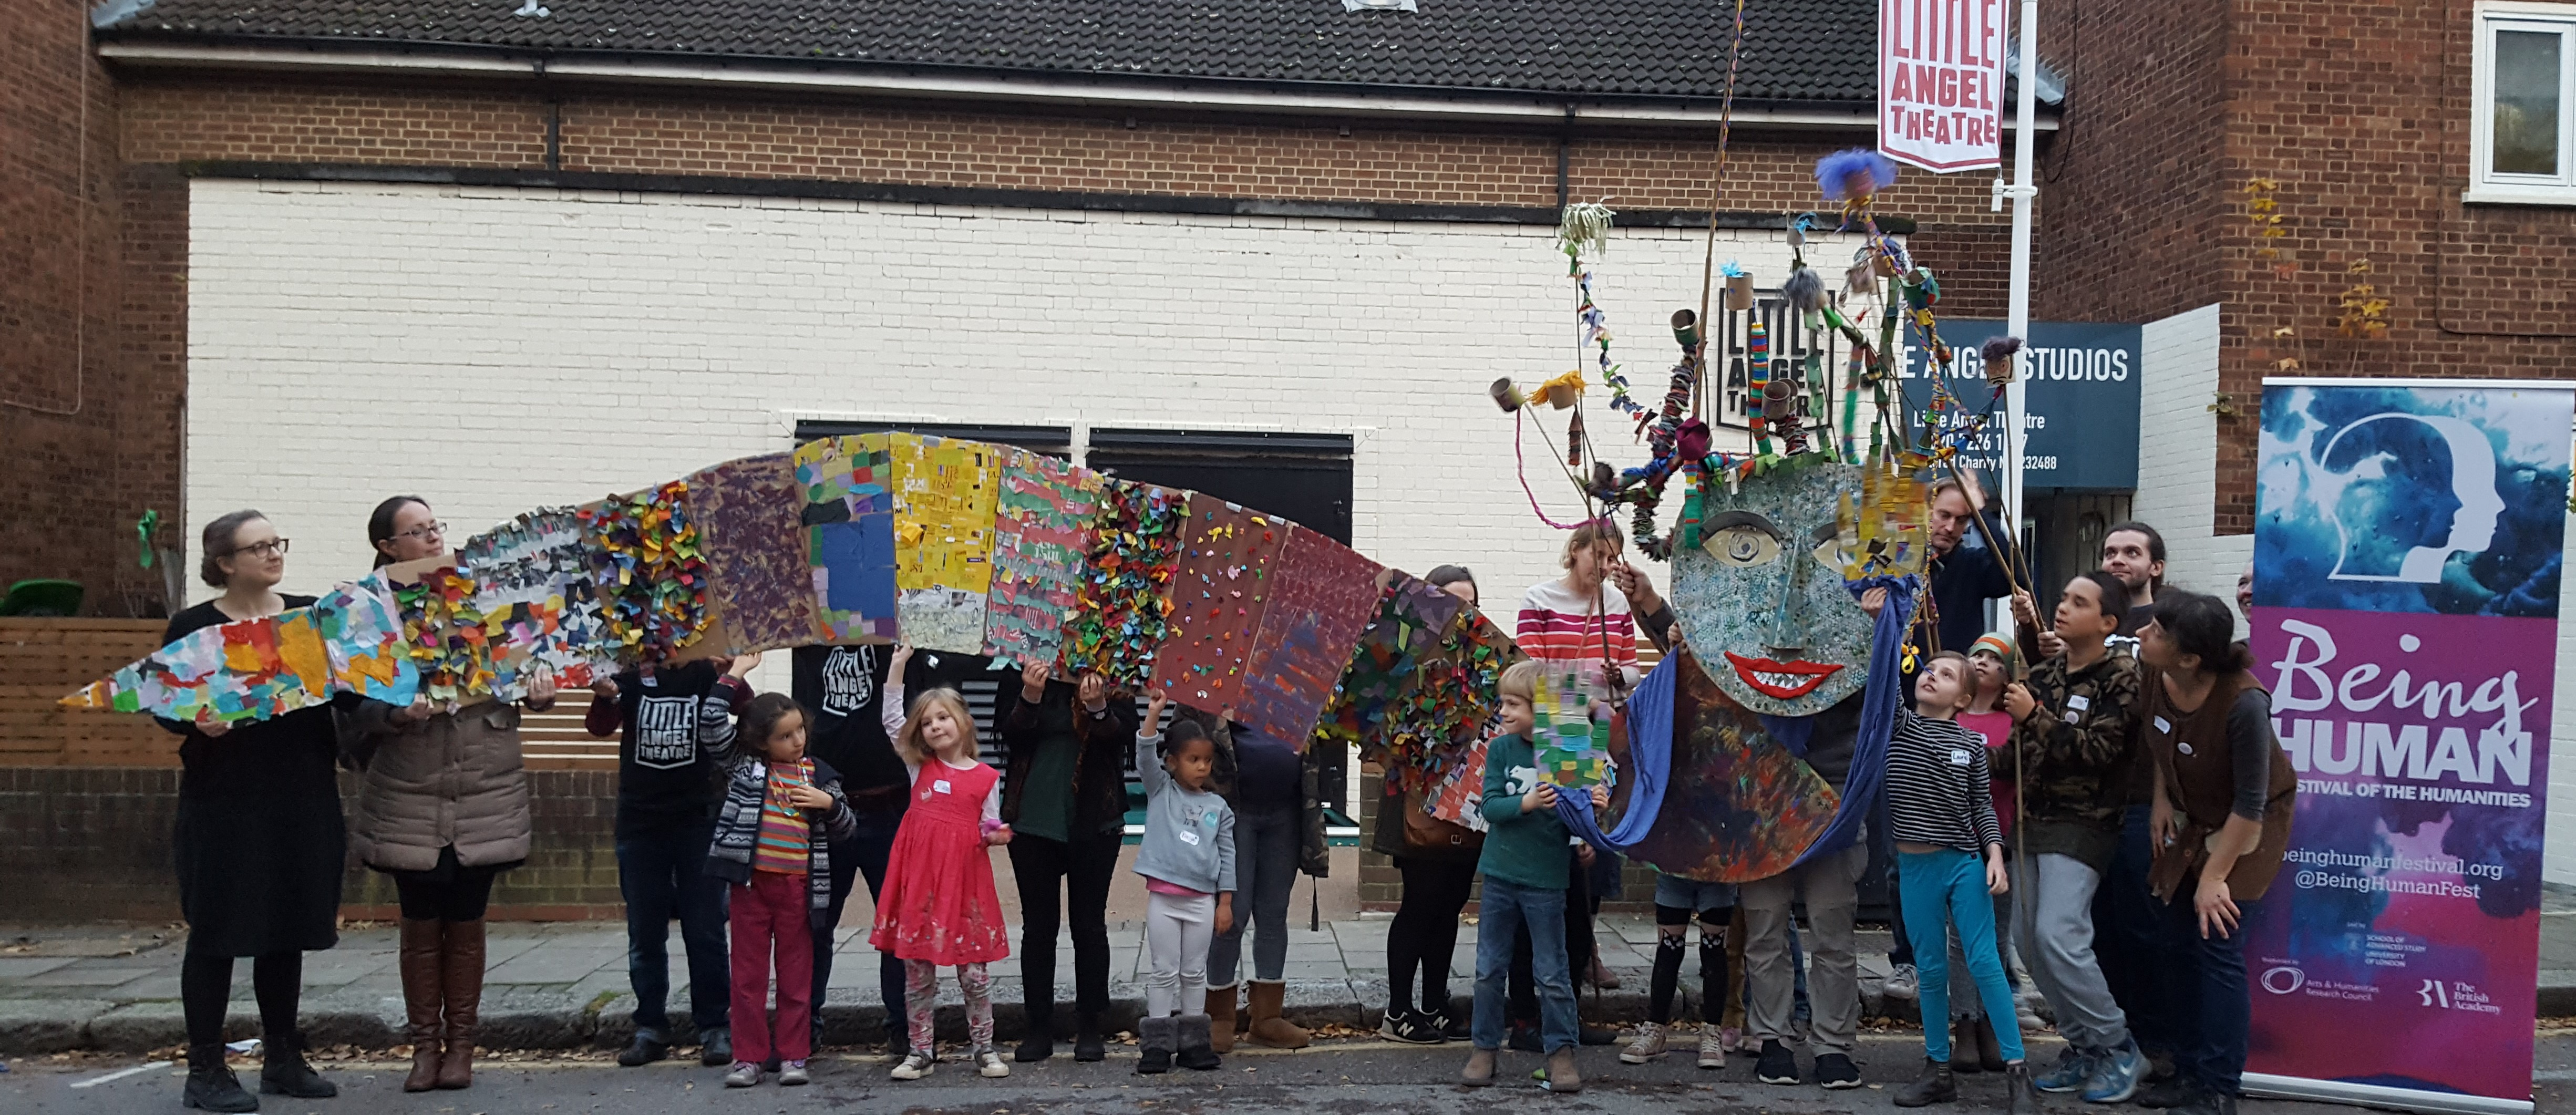 A group of adults and children hold up a giant puppet made of card and fabric. The puppet has a long snake-like body and a large head with snakes for hair. Two signs are visible in the picture. One reads 'Little Angel Theatre'; the other reads 'Being Human: festival of the humanities'.